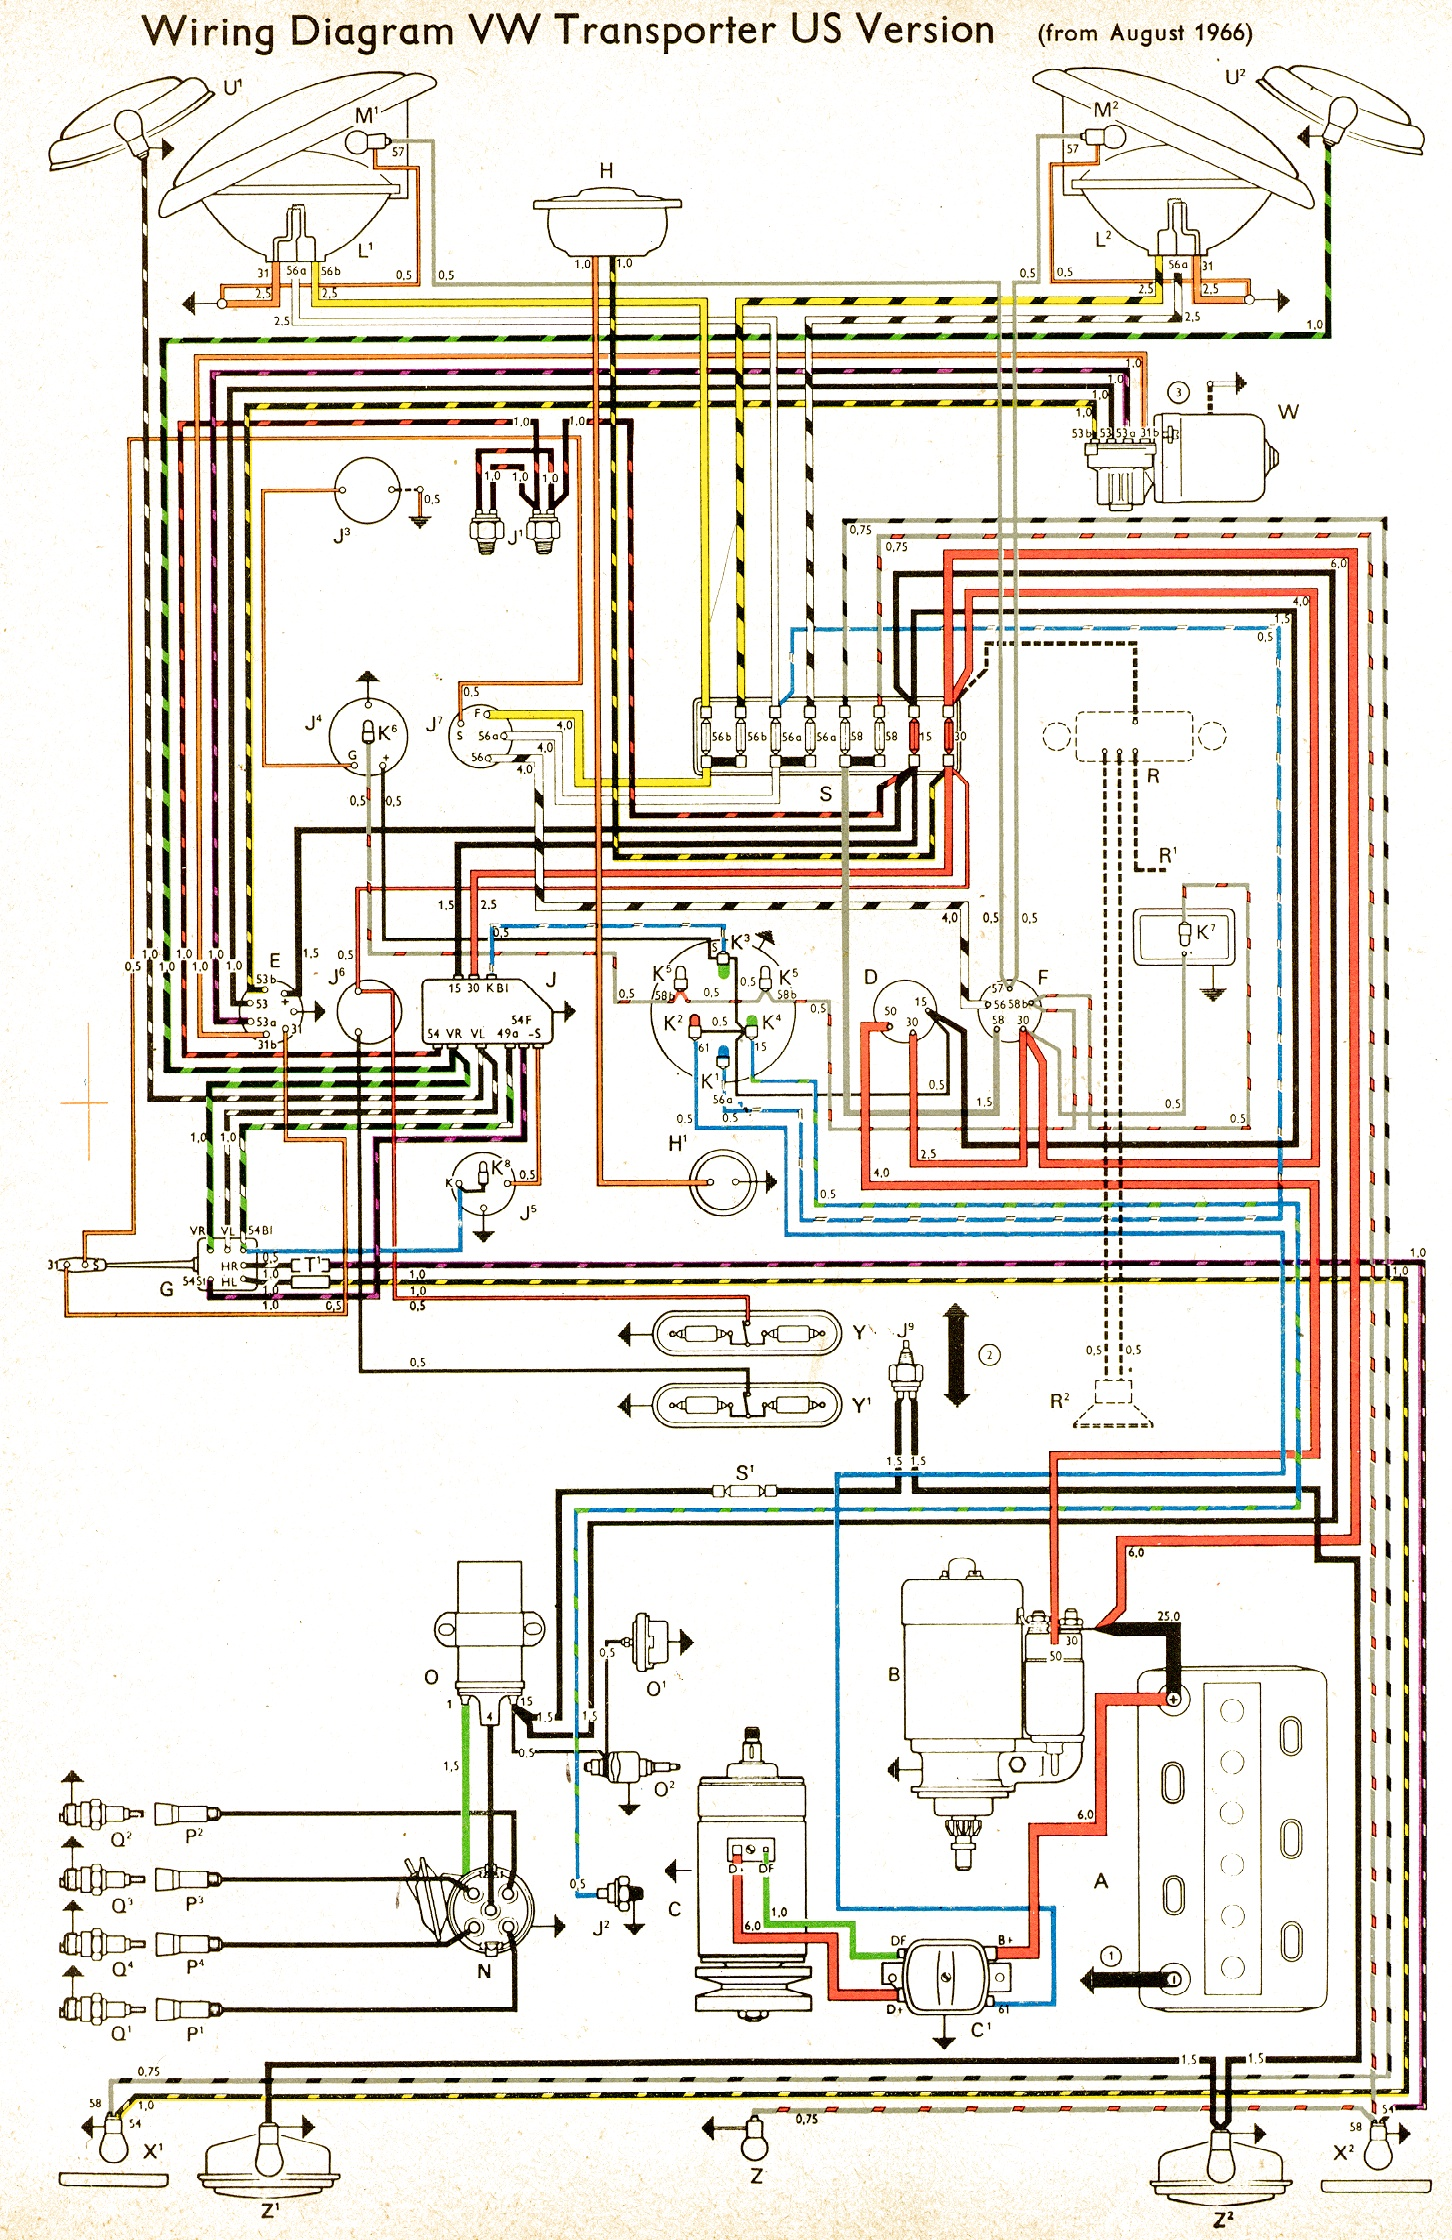 1975 beetle heater diagram wiring schematic electrical wiring 1976 VW Bus Wiring Schematic